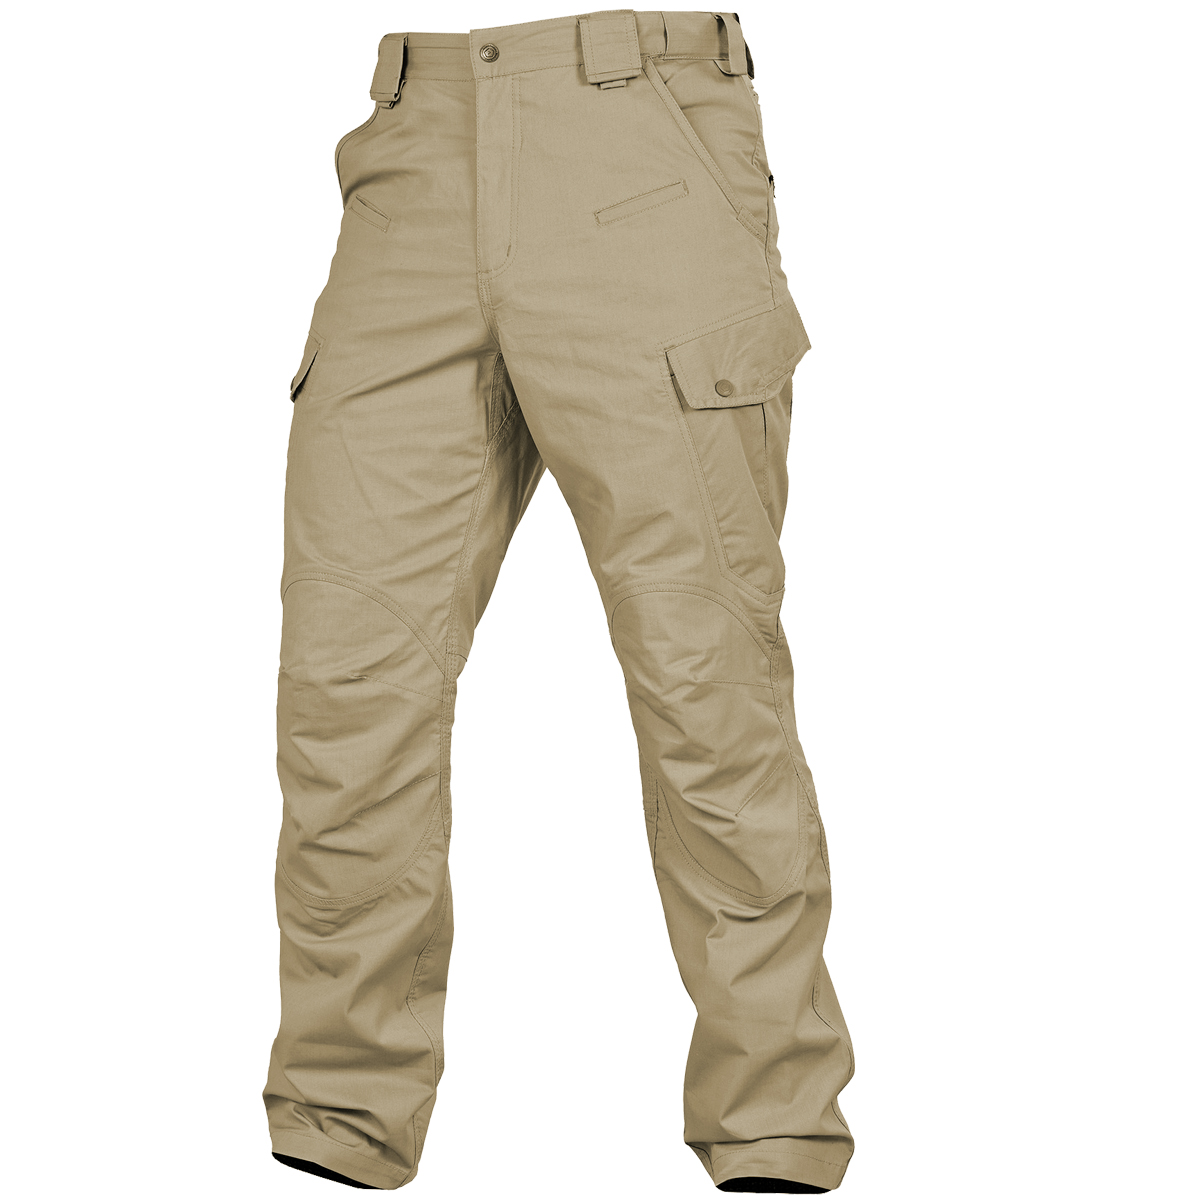 Sign me up for Cheaper Than Dirt Email Updates about new services and special offers! Tactical Tactical Pants Size 52 Cotton Khaki $ Tactical Men's Fast-Tac Cargo Pants 44x30 Battle Brown Tactical MultiCam TDU Pants XLarge Regular. $ Tactical Men's Urban Fast-Tac Pants 42x32 Battle Brown. $